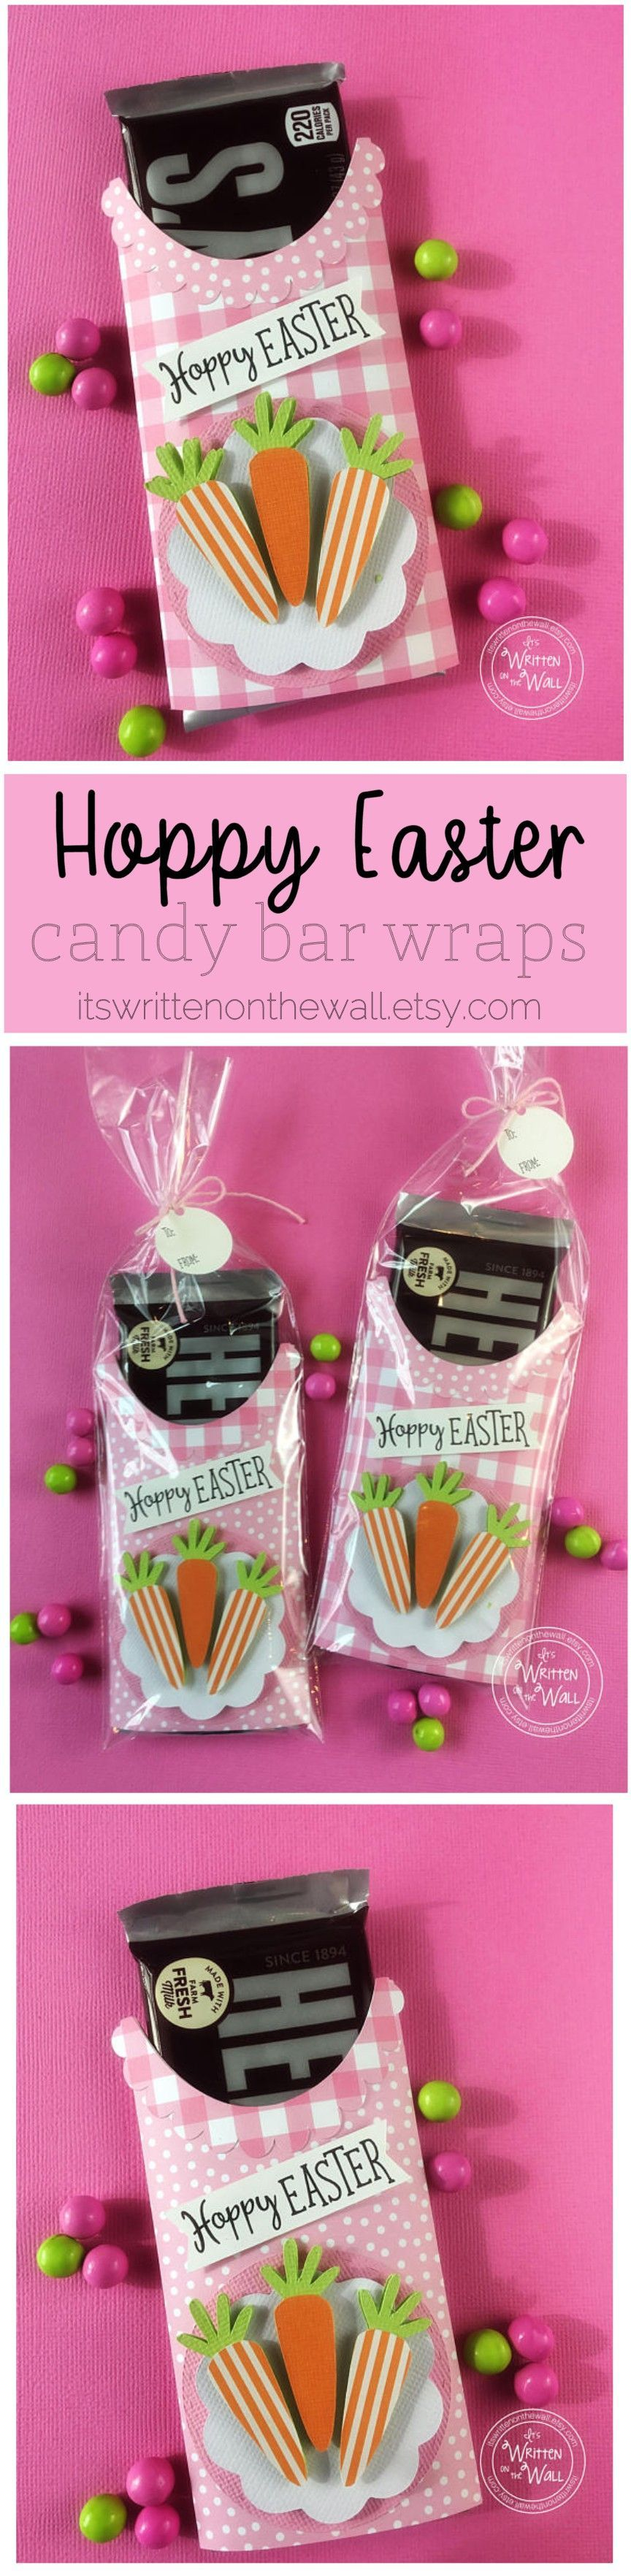 Special easter basket candy party favor co workers treats special easter basket candy party favor co workers treats employee gifts client gifts teacher appreciation neighbor gifts office treats office gifts negle Gallery